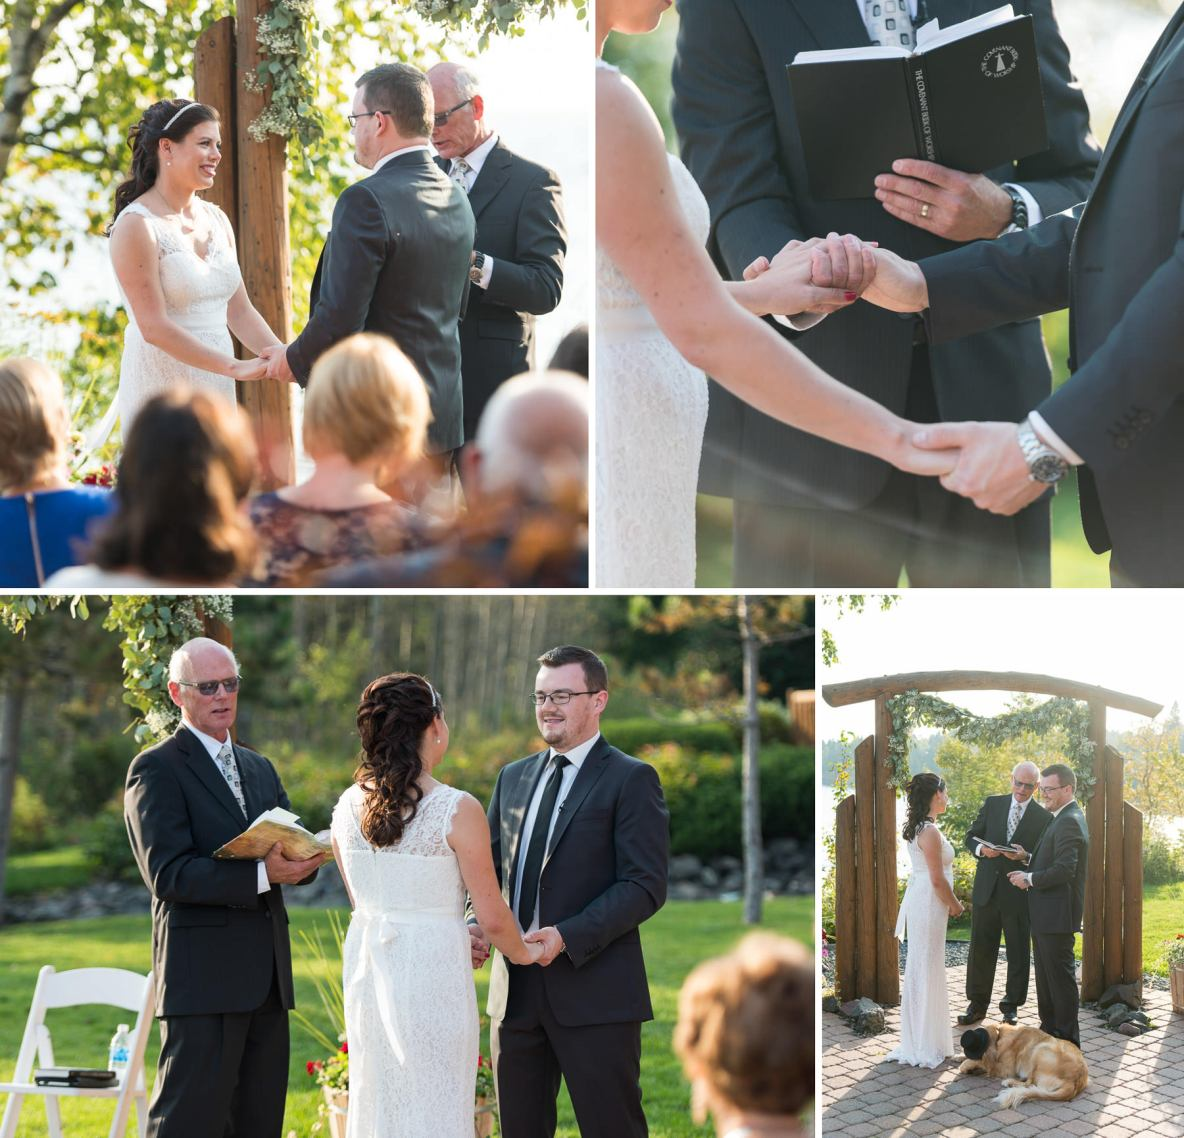 Photos of the intimate outdoor wedding ceremony beside the waters of Lake Superior.